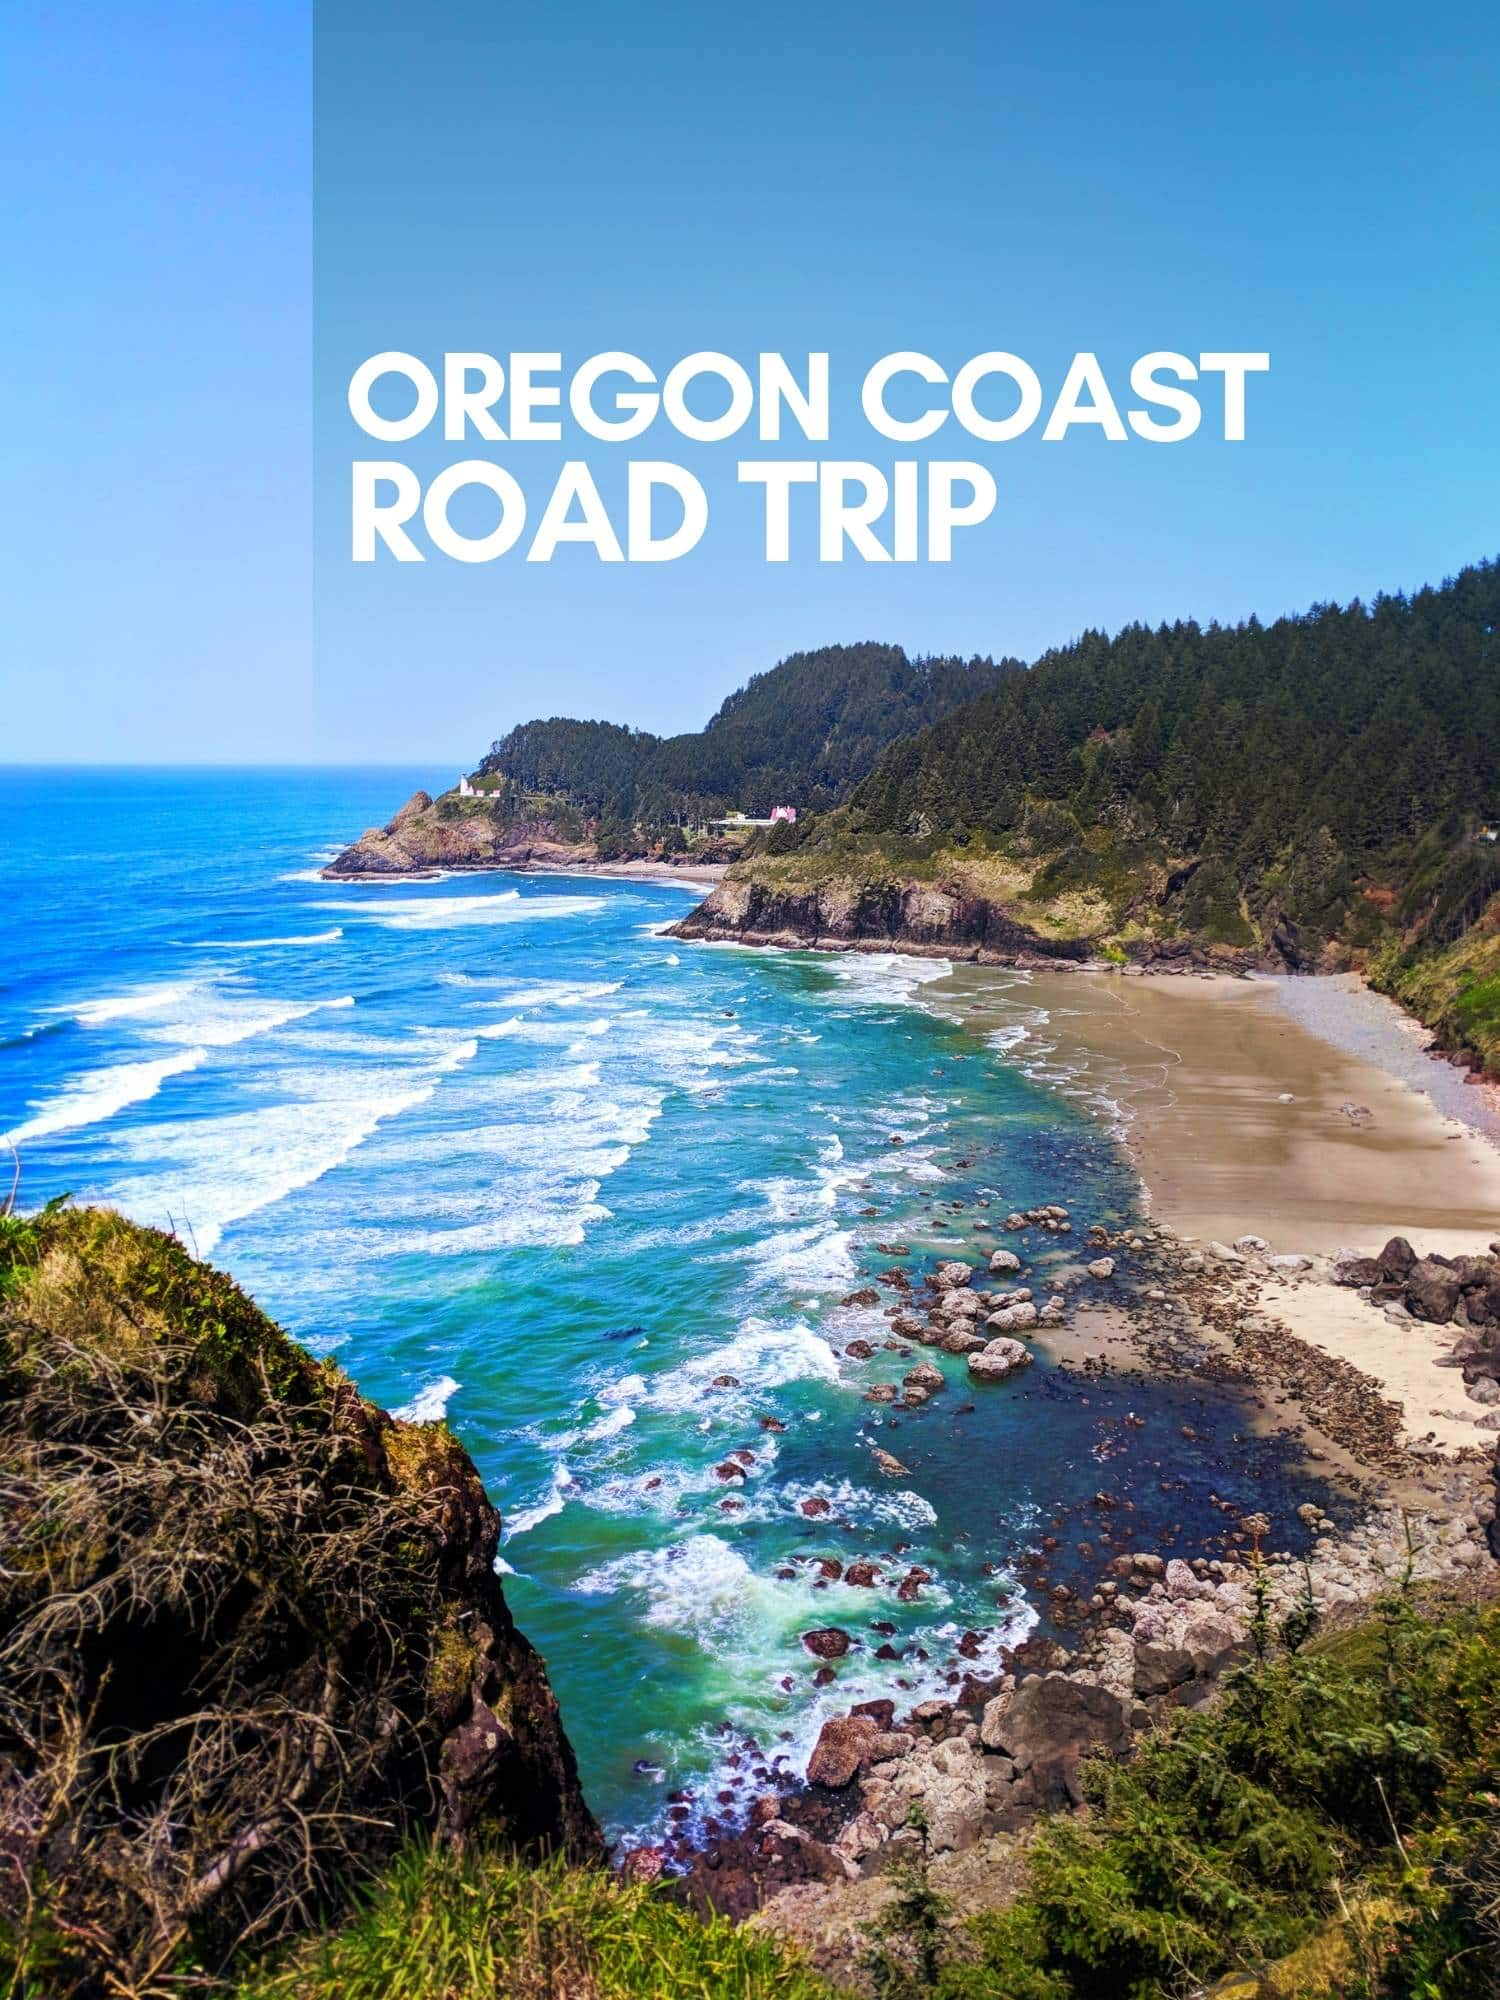 Complete Oregon Coast road trip itinerary from north to south. Best things to do, sights to see and where to stay along the rugged Oregon Coast.